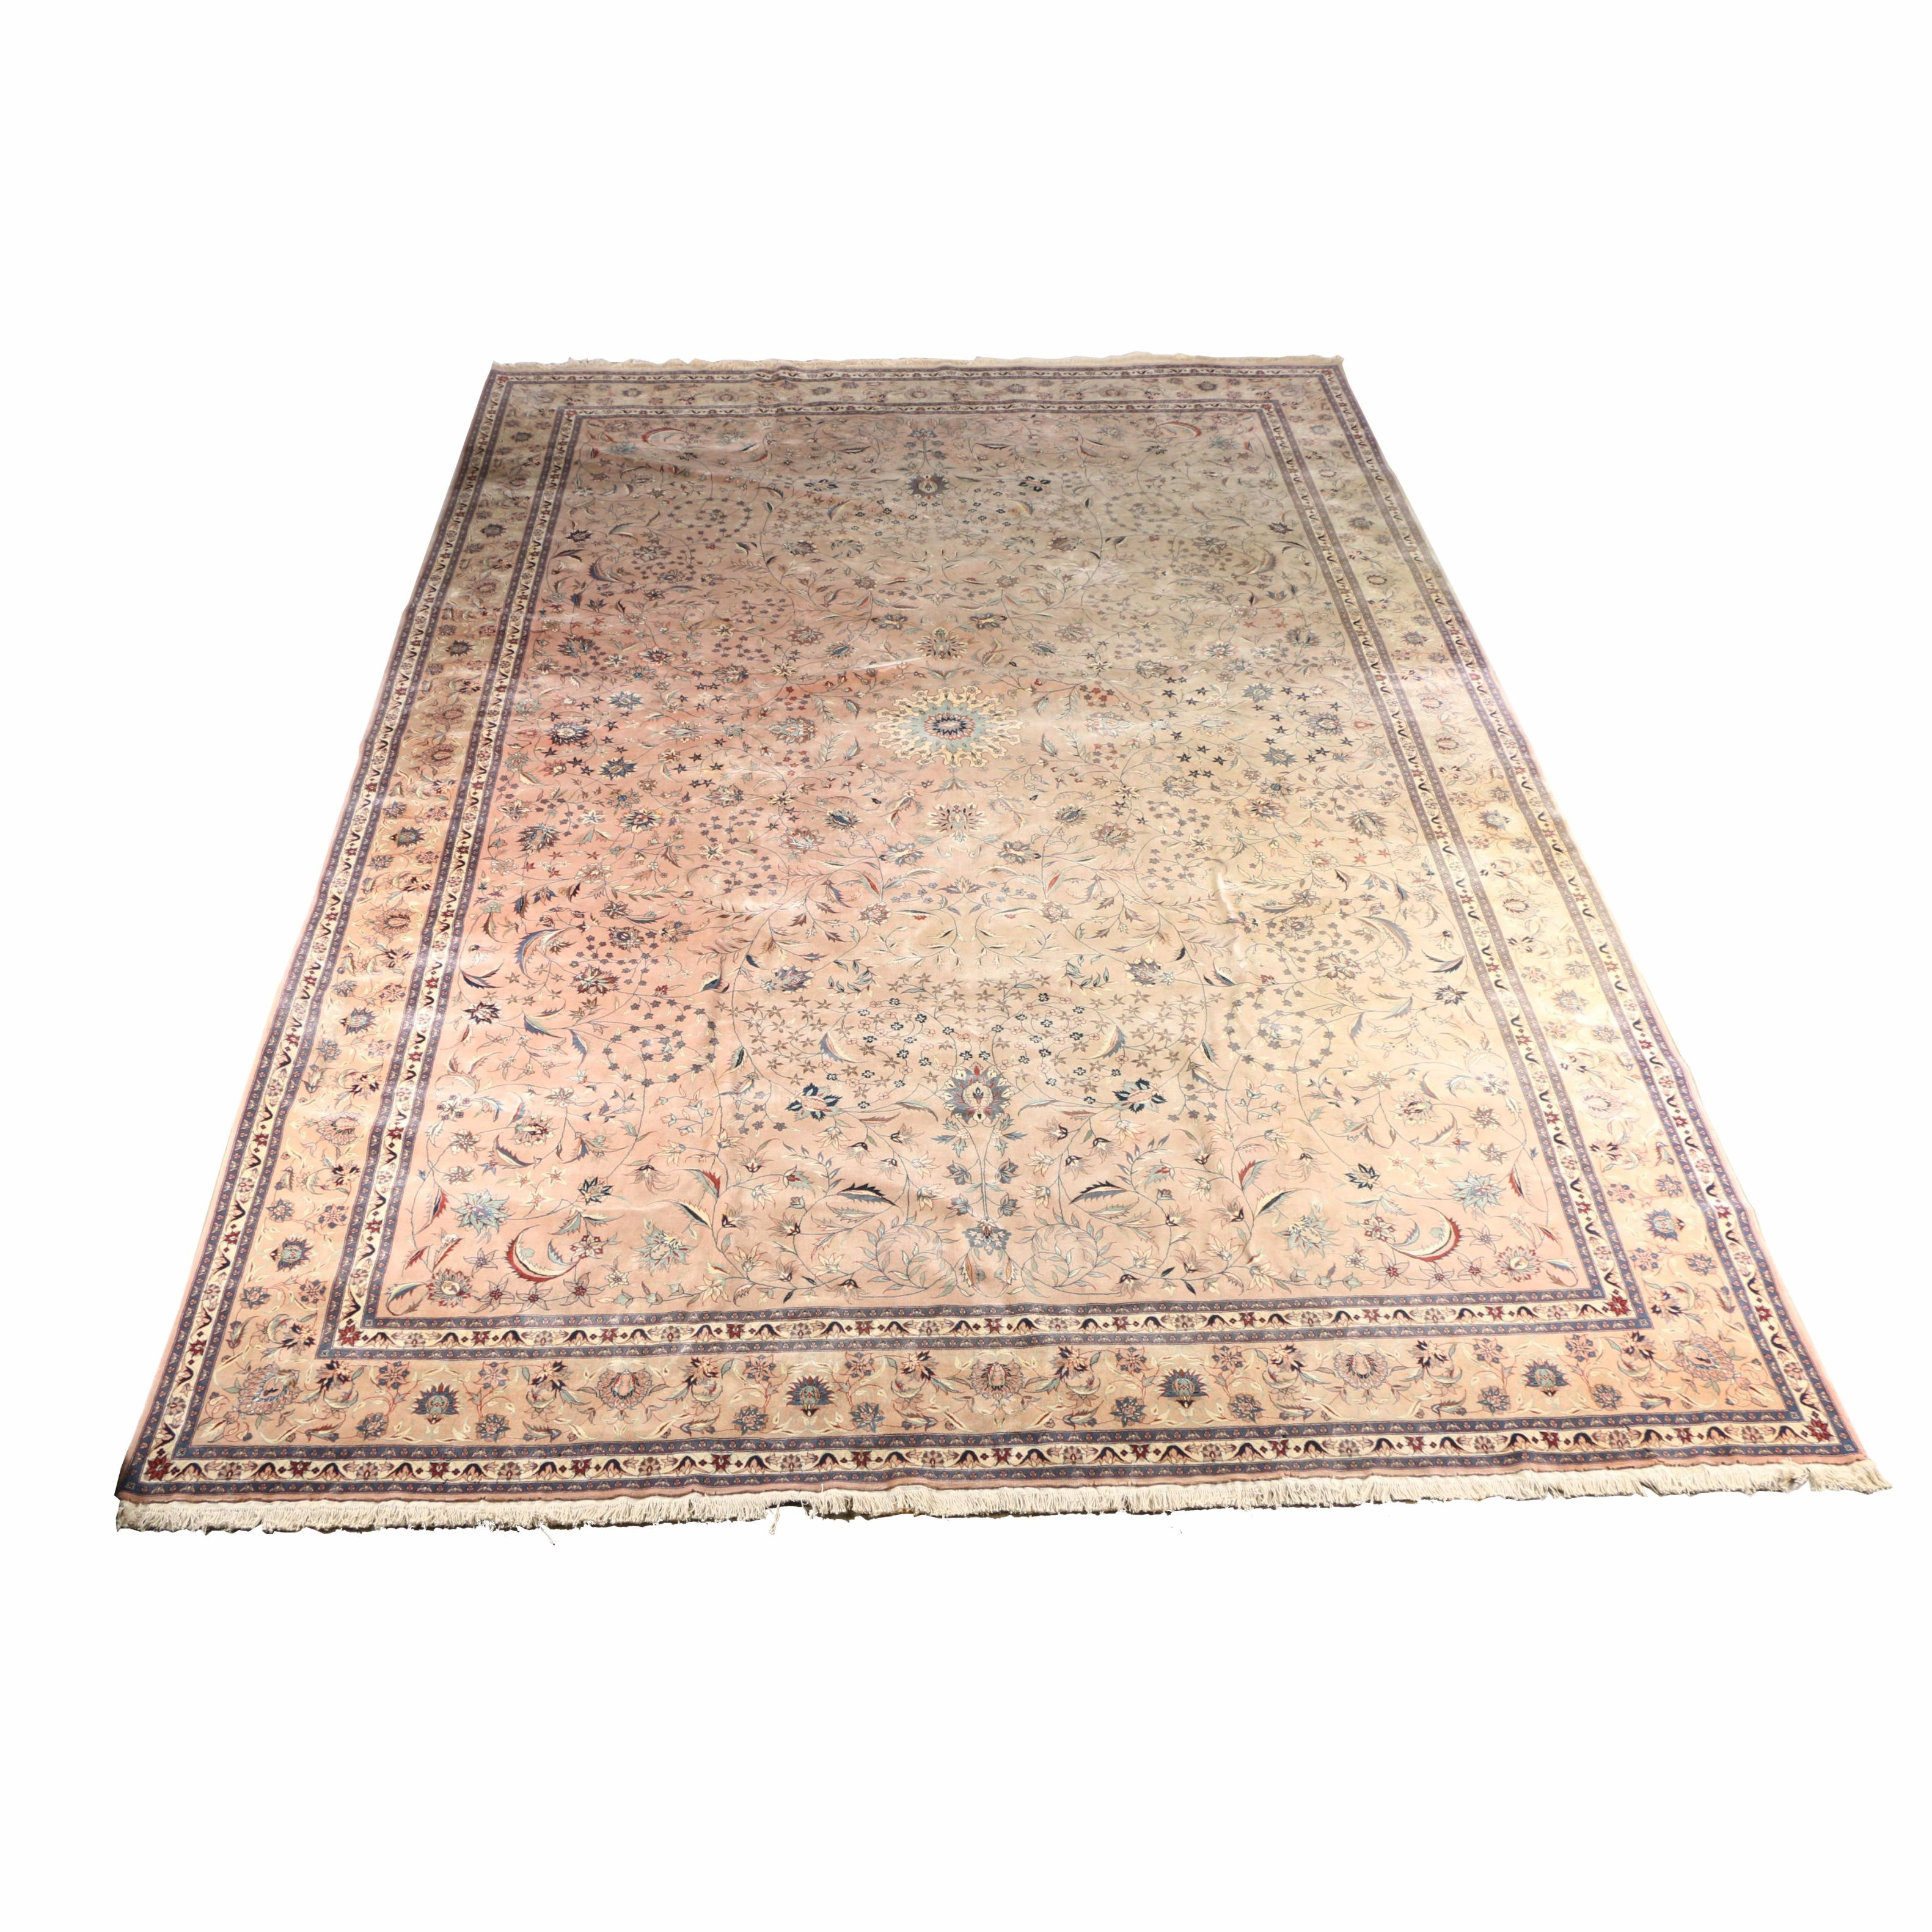 Large Hand-Knotted Persian Tabriz Area Rug